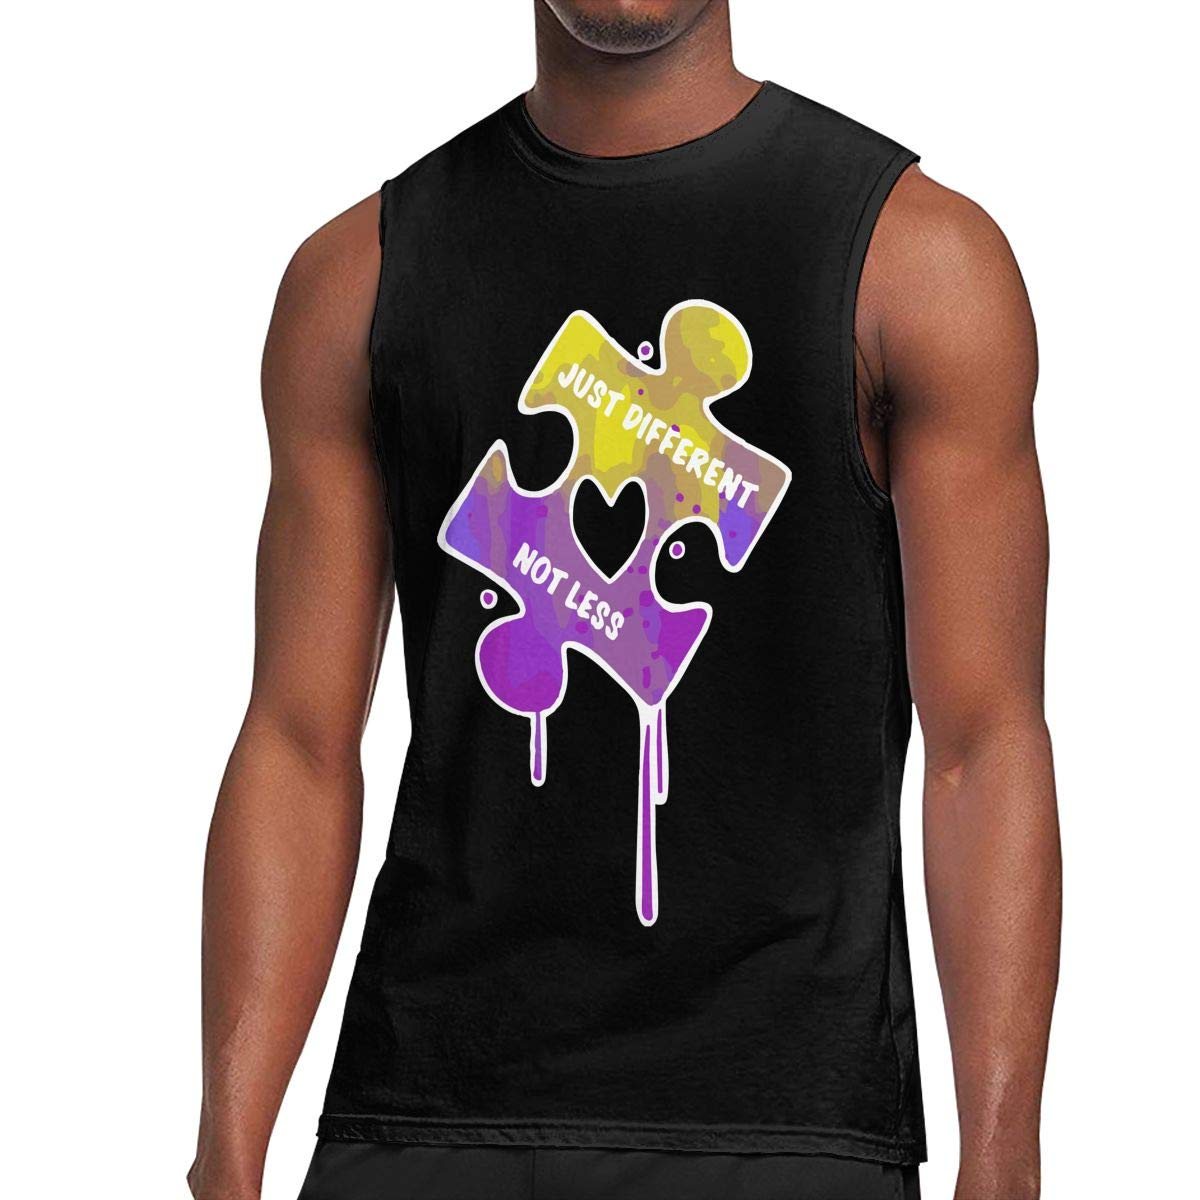 BFBG5f-Tee Mens Autism Awareness Gym Sport Jersey Tank Tees